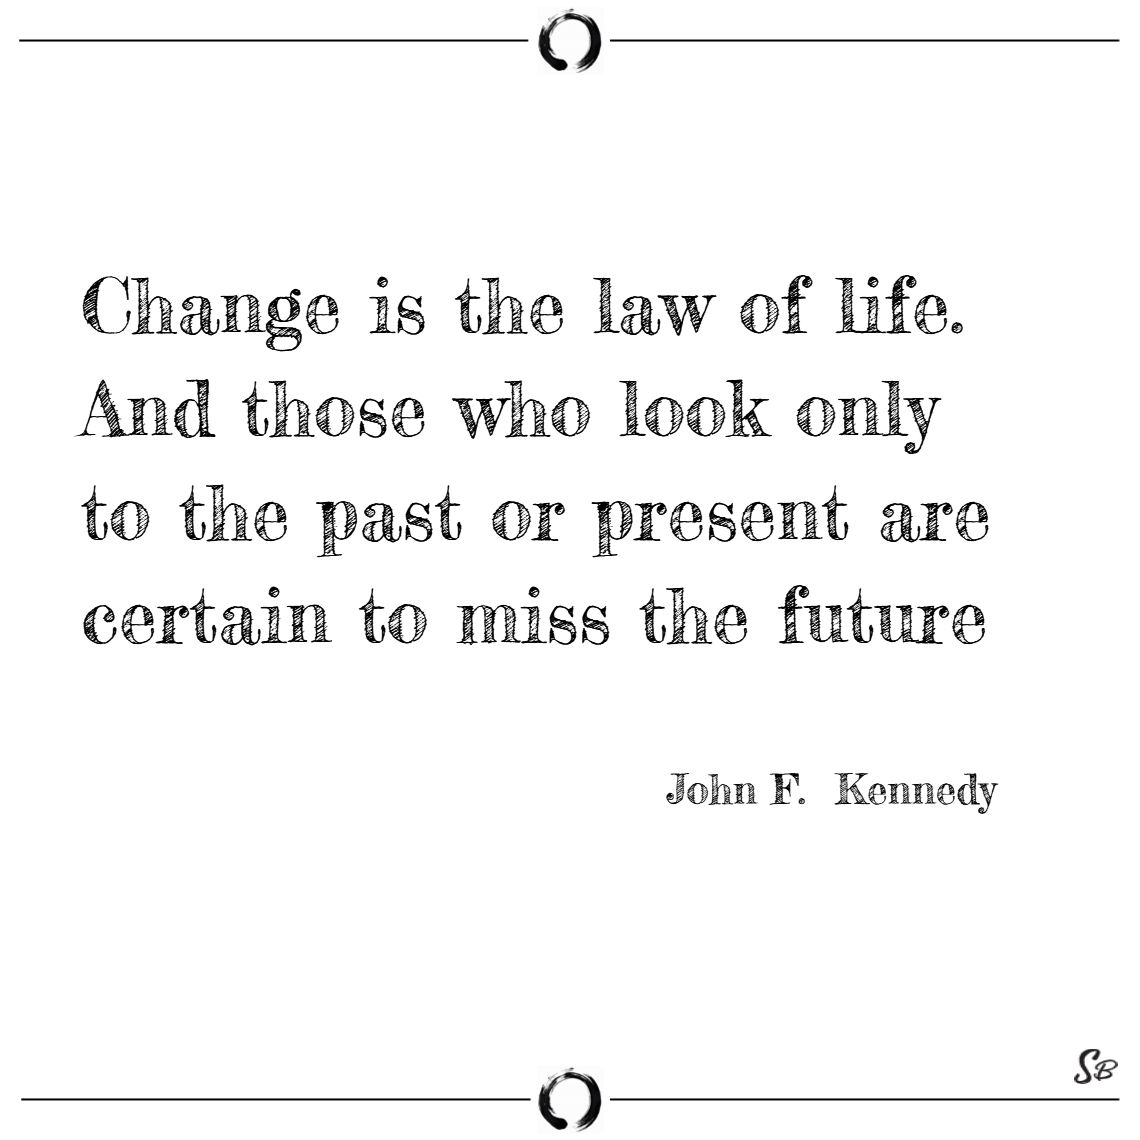 Change is the law of life. and those who look only to the past or present are certain to miss the future. – john f. kennedy